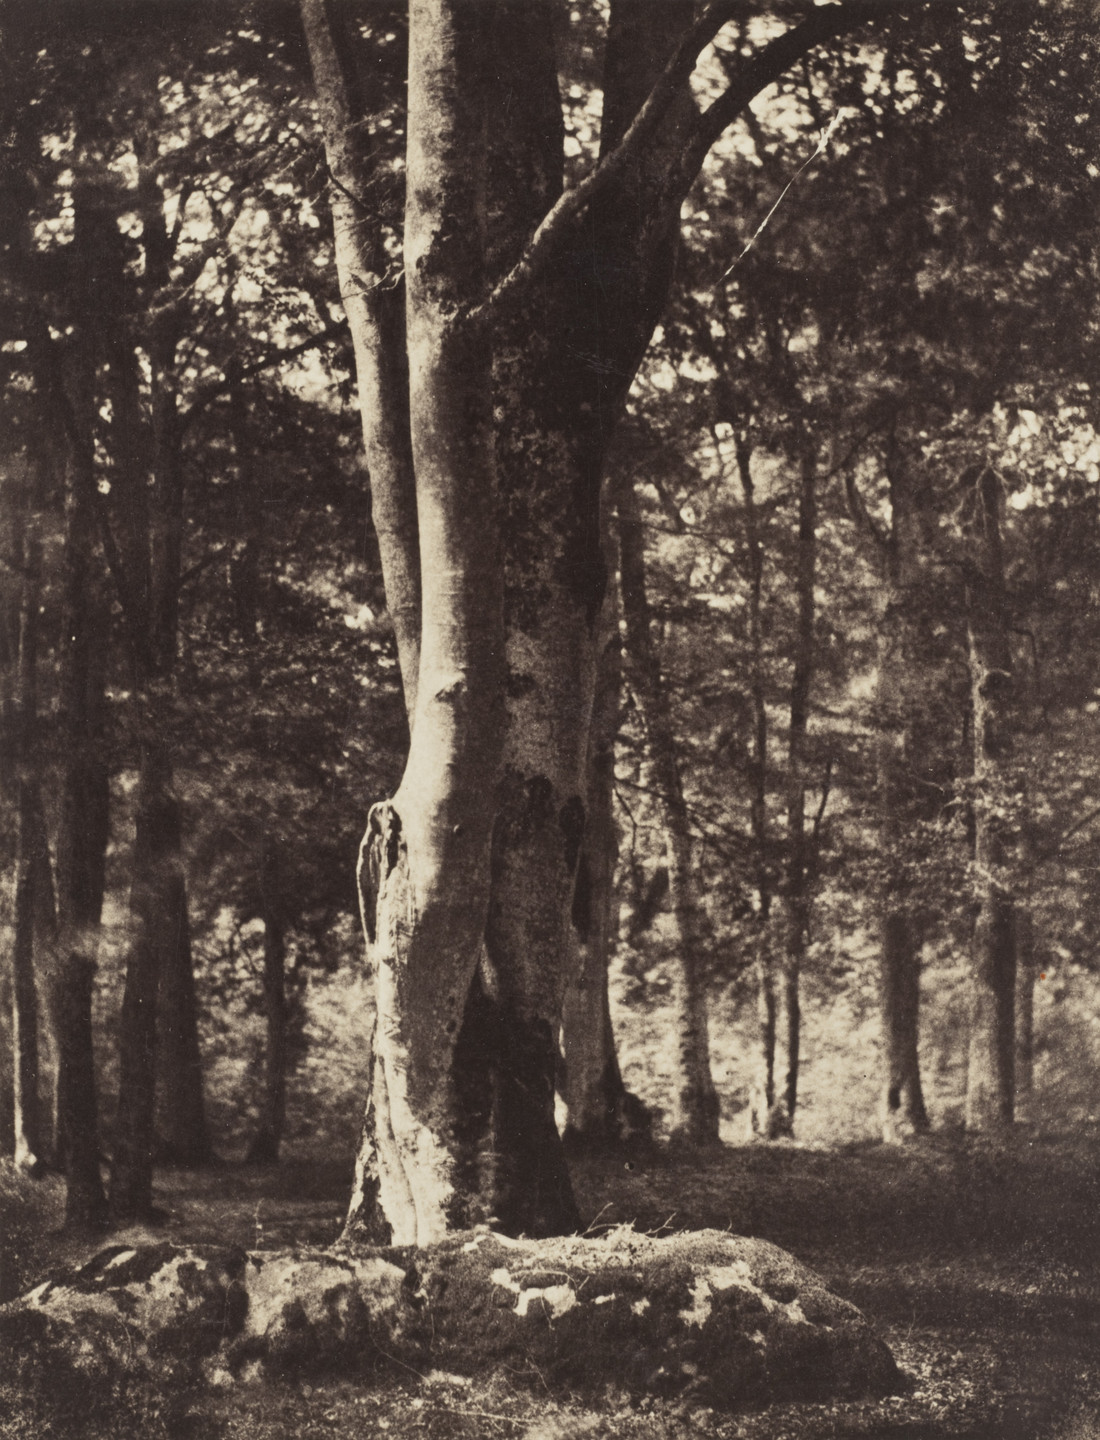 Gustave Le Gray. Forest of Fontainebleau. c. 1856